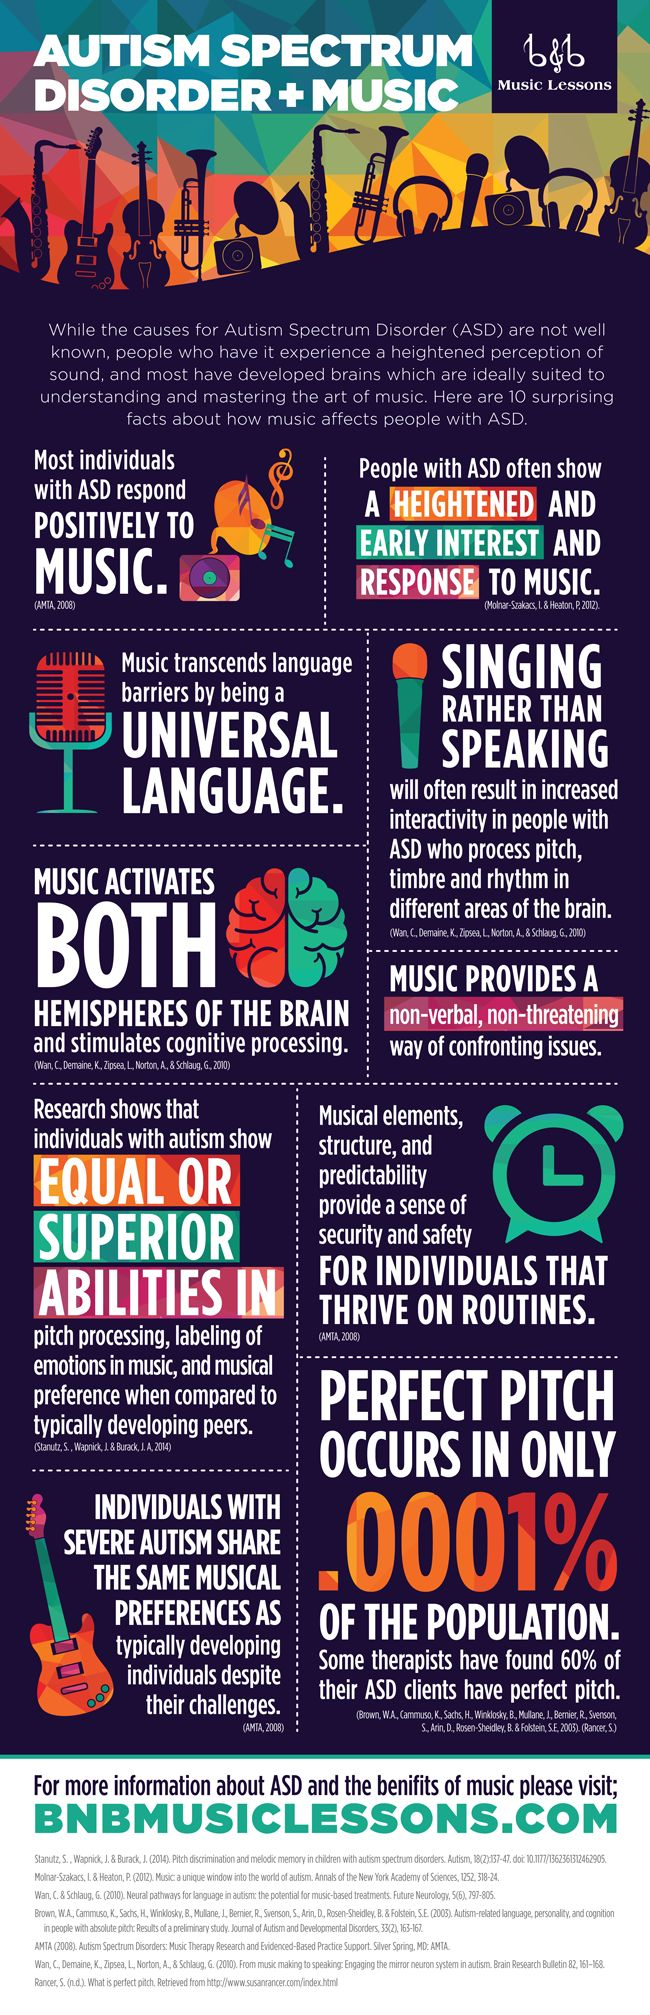 Autism Spectrum Disorder & Music - It been shown how constructive music education is in all areas of cognitive development, but it also proves to be especially helpful to those with ASD. As showcased by this infographic, it basically boils down to the two most indicative symptoms across the spectrum of those with autism. Those being that ASD can be characterized mainly by poor ability to communicate and interact socially, along with being prone to repetitive behaviors and specific interests.